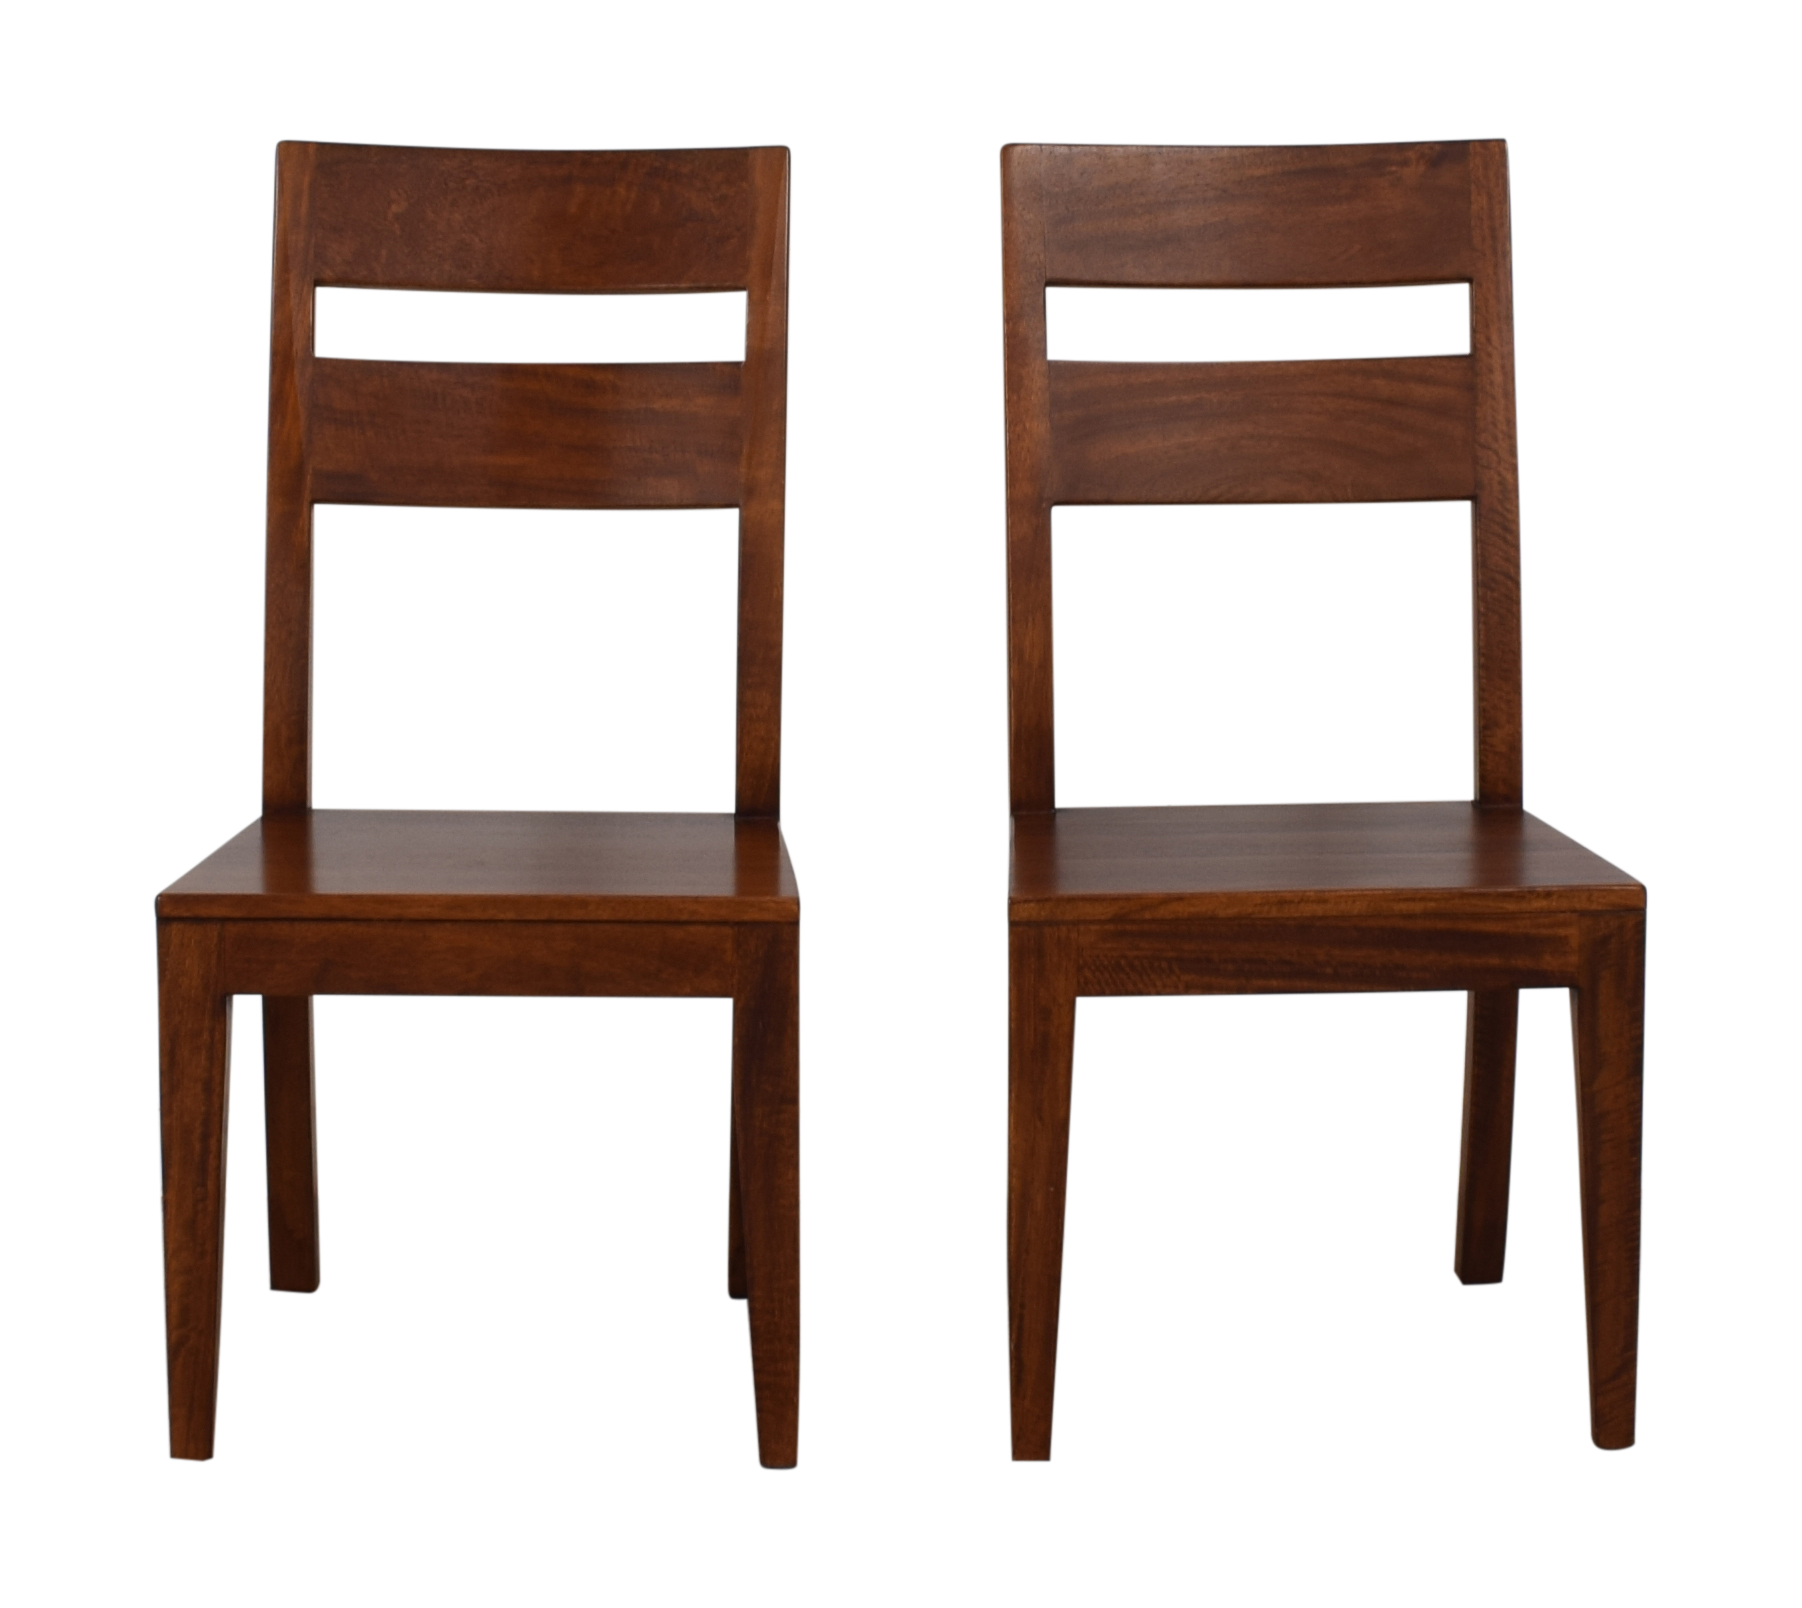 Crate & Barrel Basque Honey Wood Dining Chairs sale